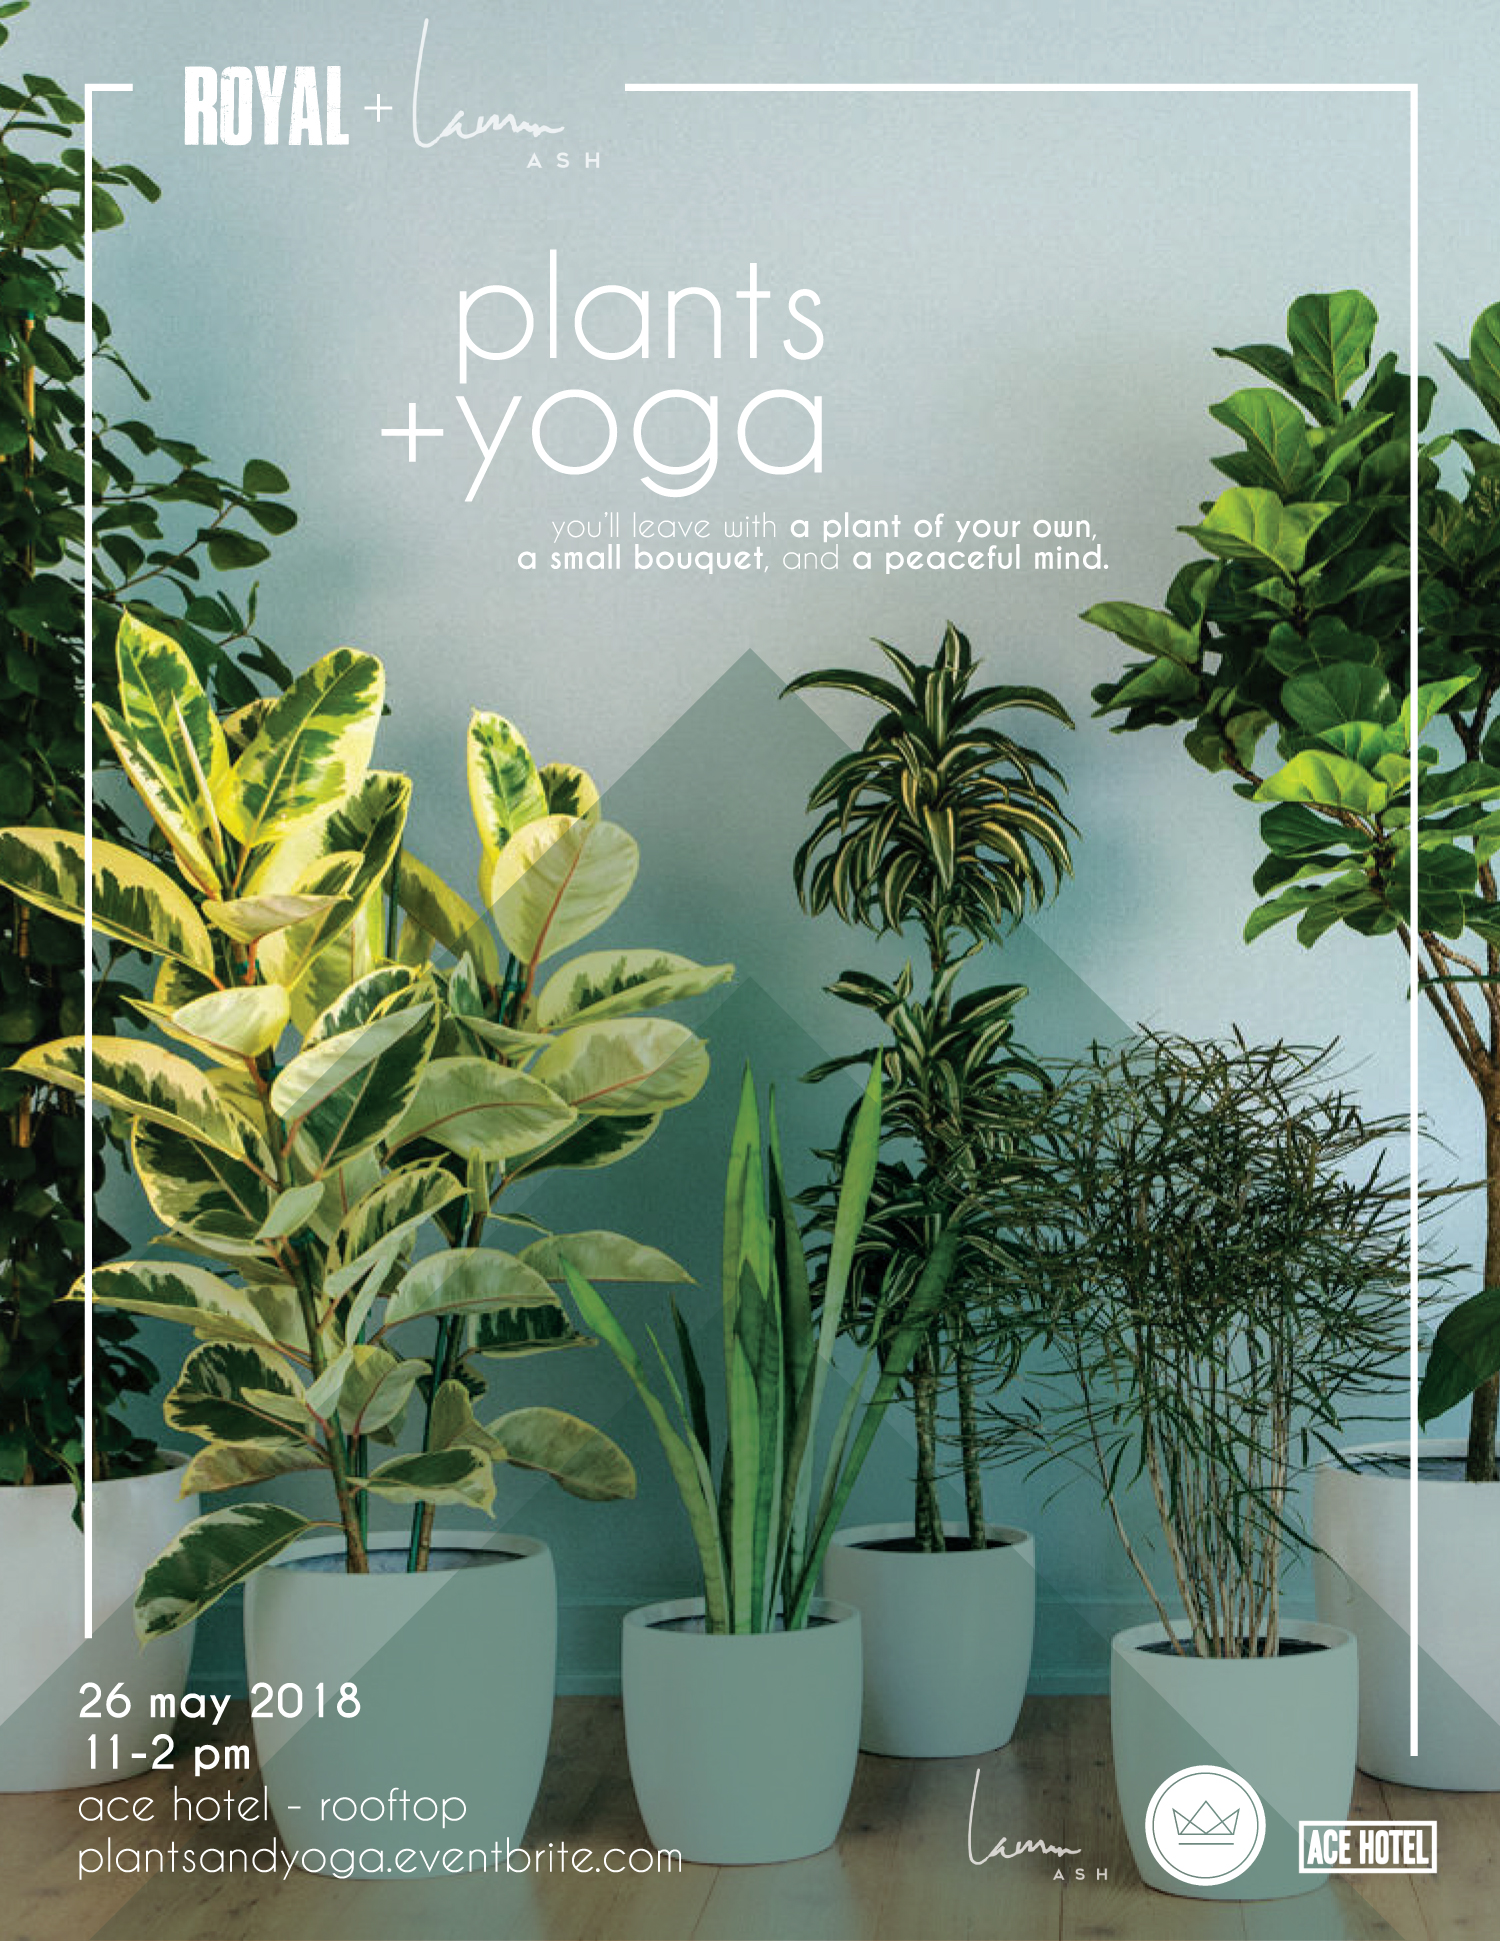 plants-and-yoga.jpg